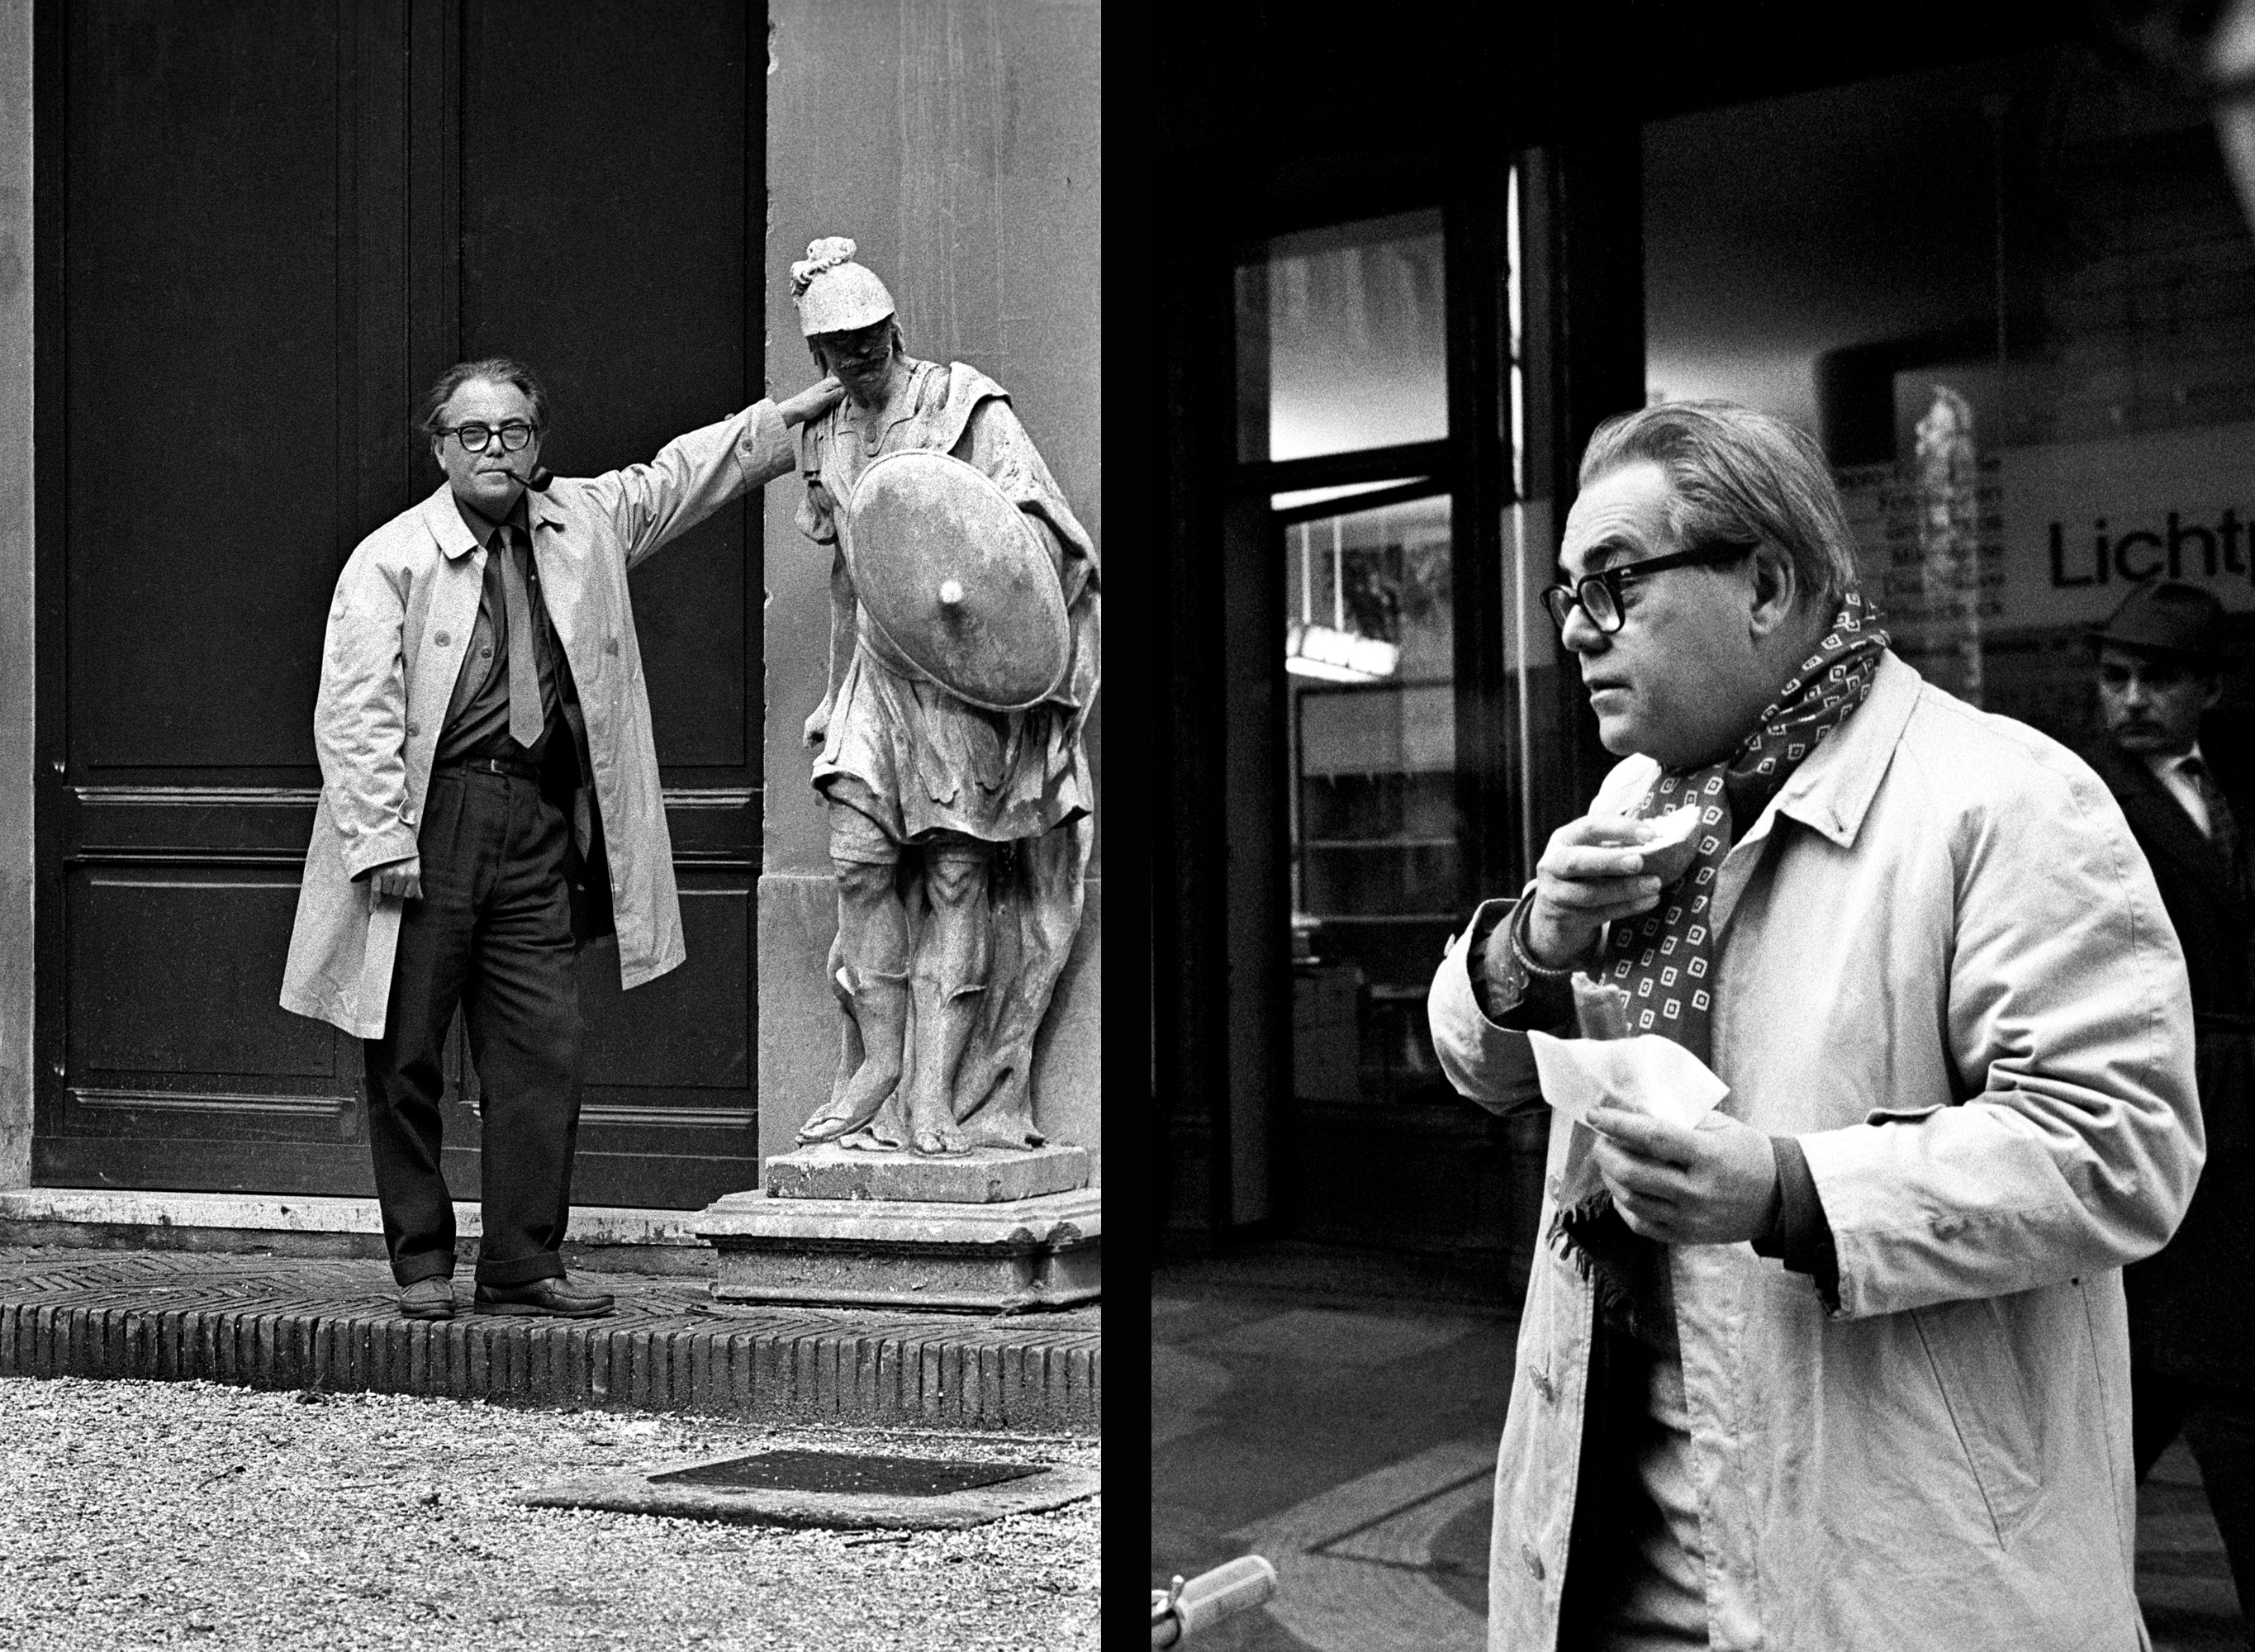 The author in Rome (left) and in Zurich (right).